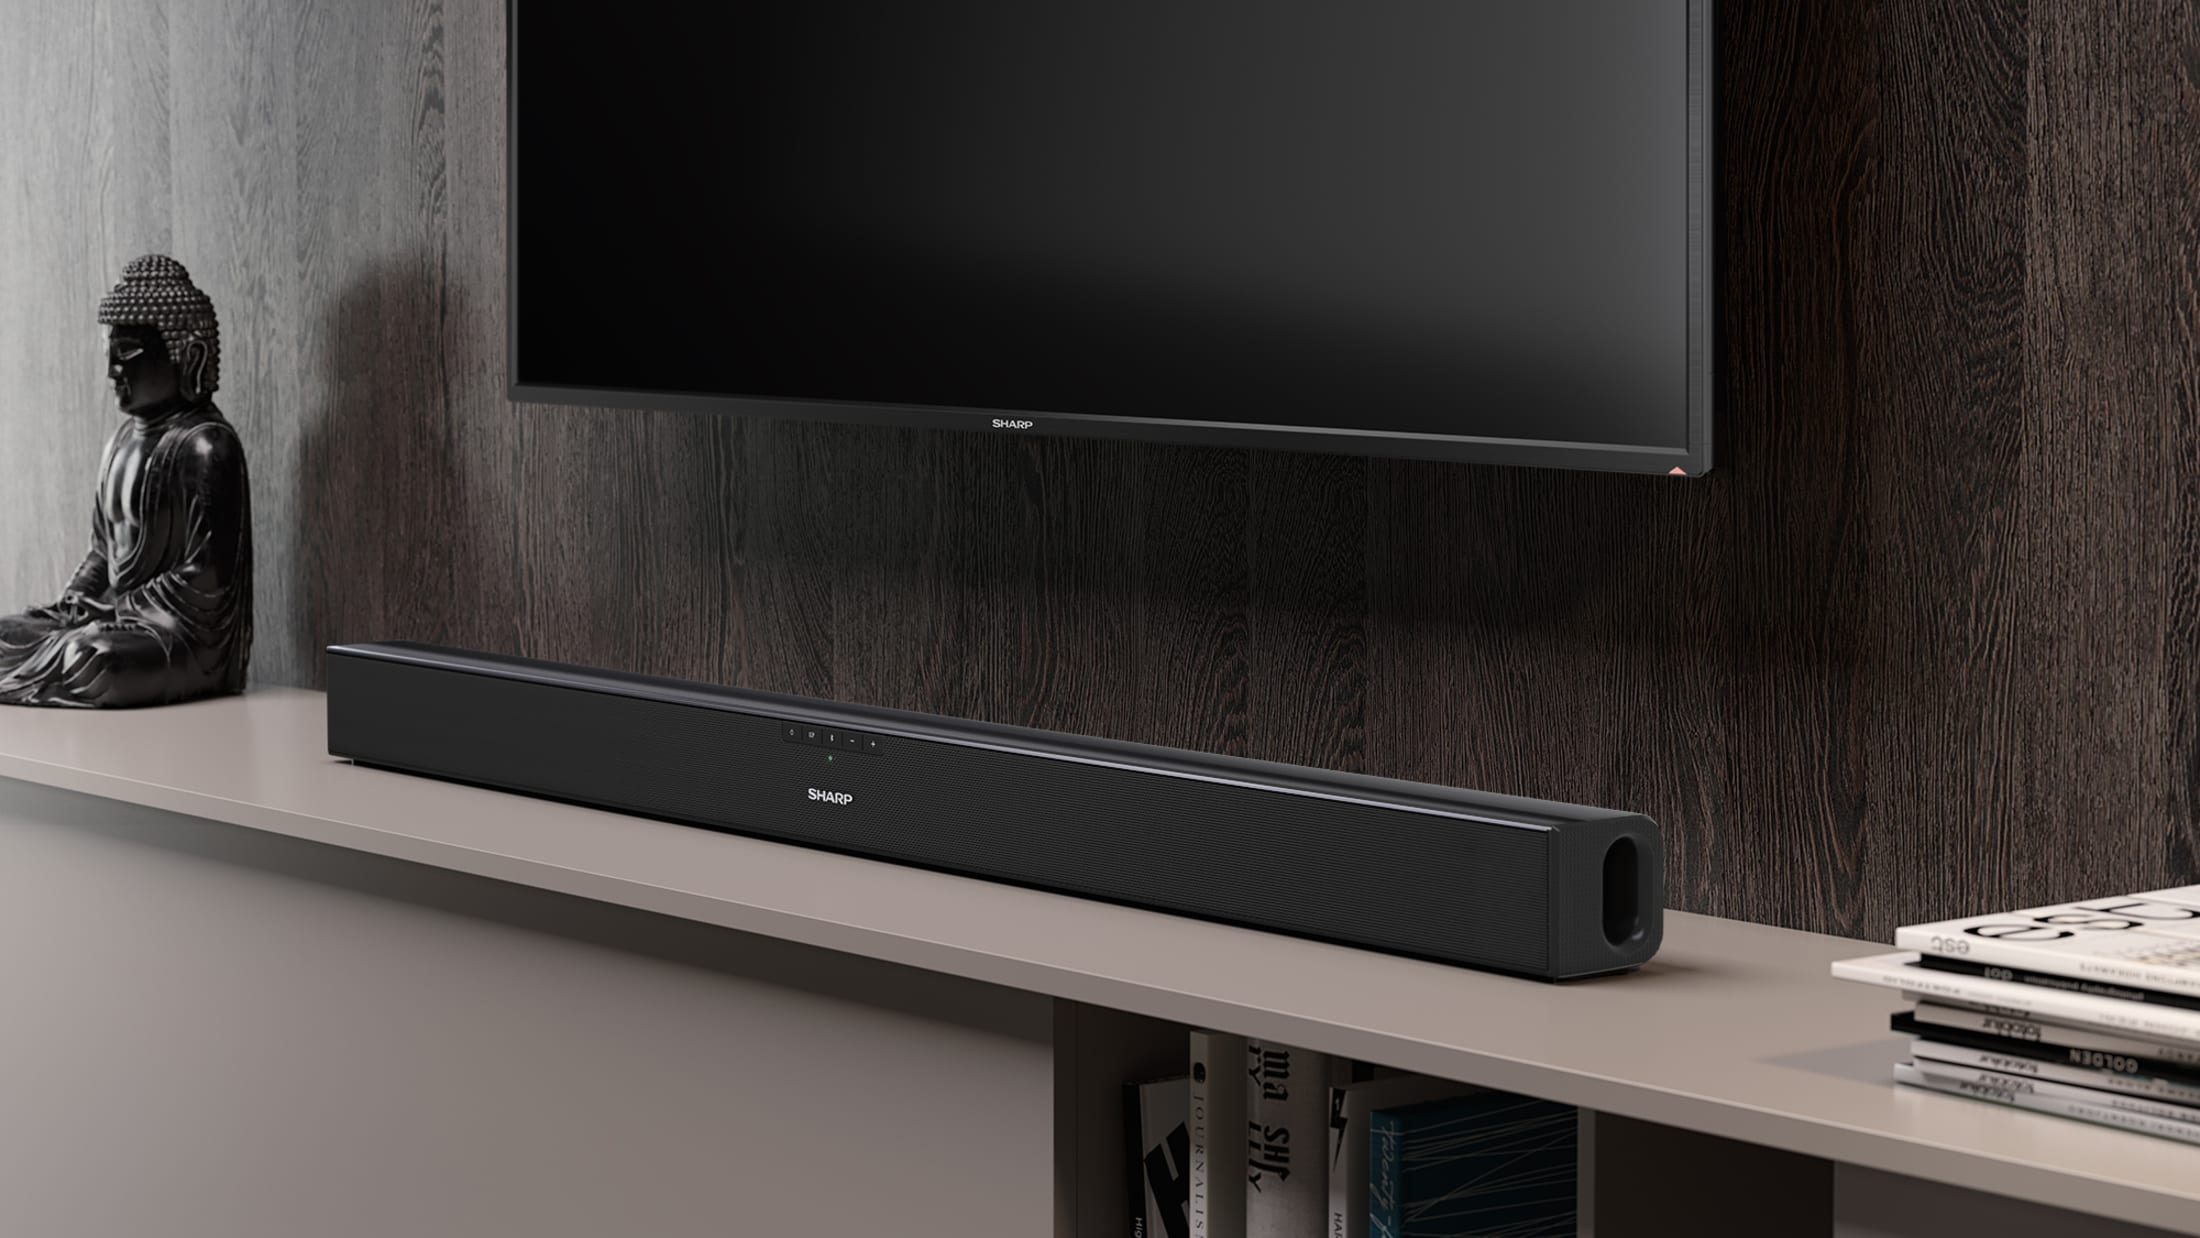 2.0 Slim Soundbar with 150 W and Bluetooth wireless music streaming. Suitable for 43 inch TV and above.